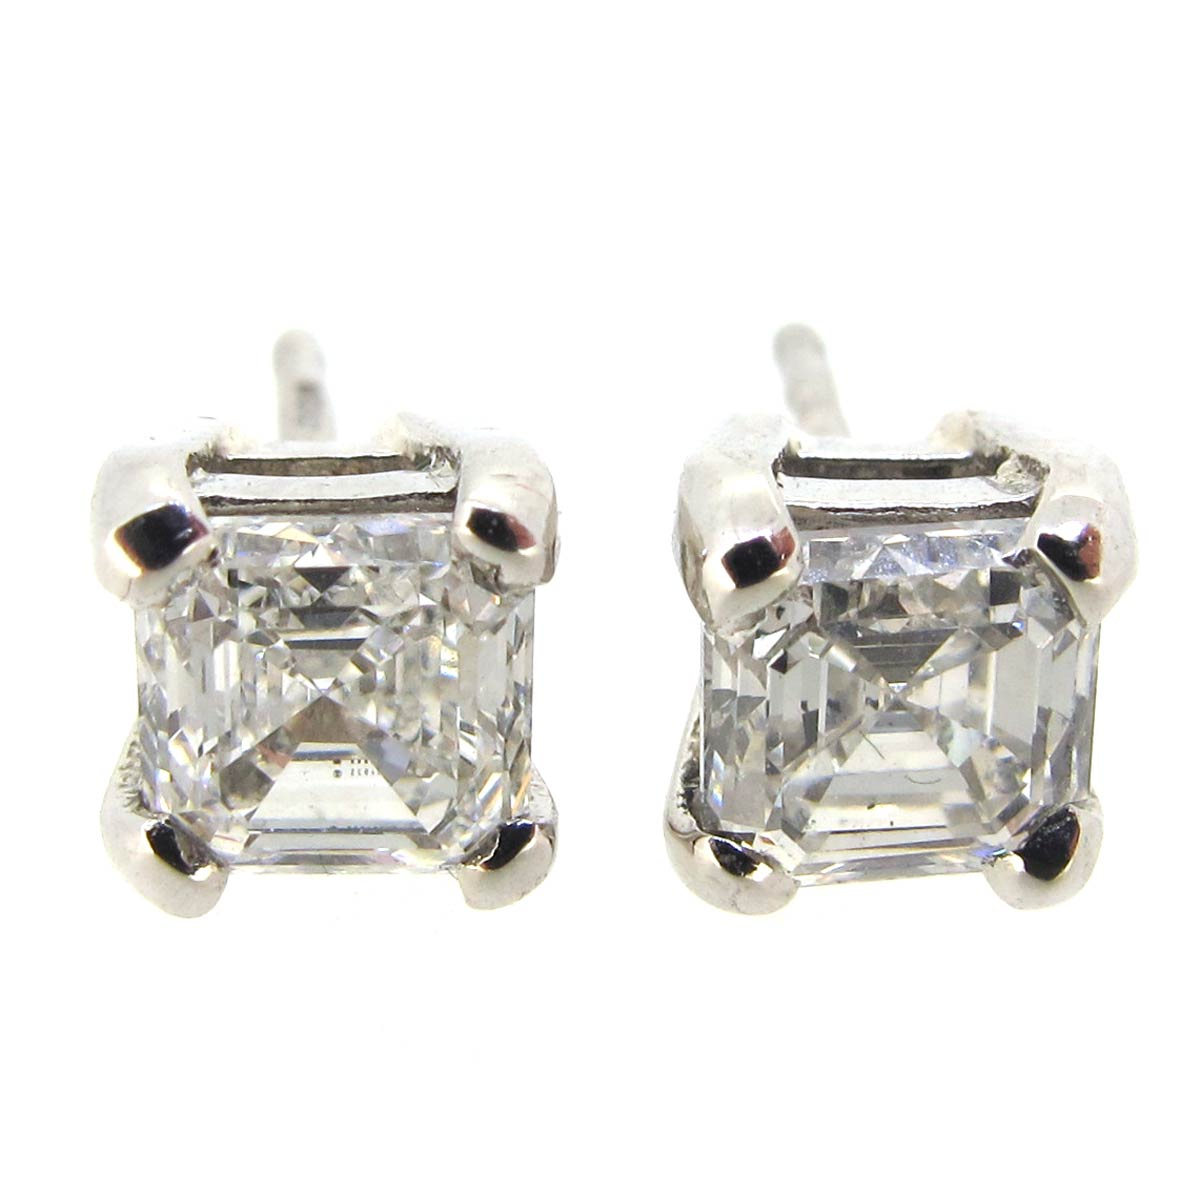 Platinum & Ascher Cut Diamond Earrings